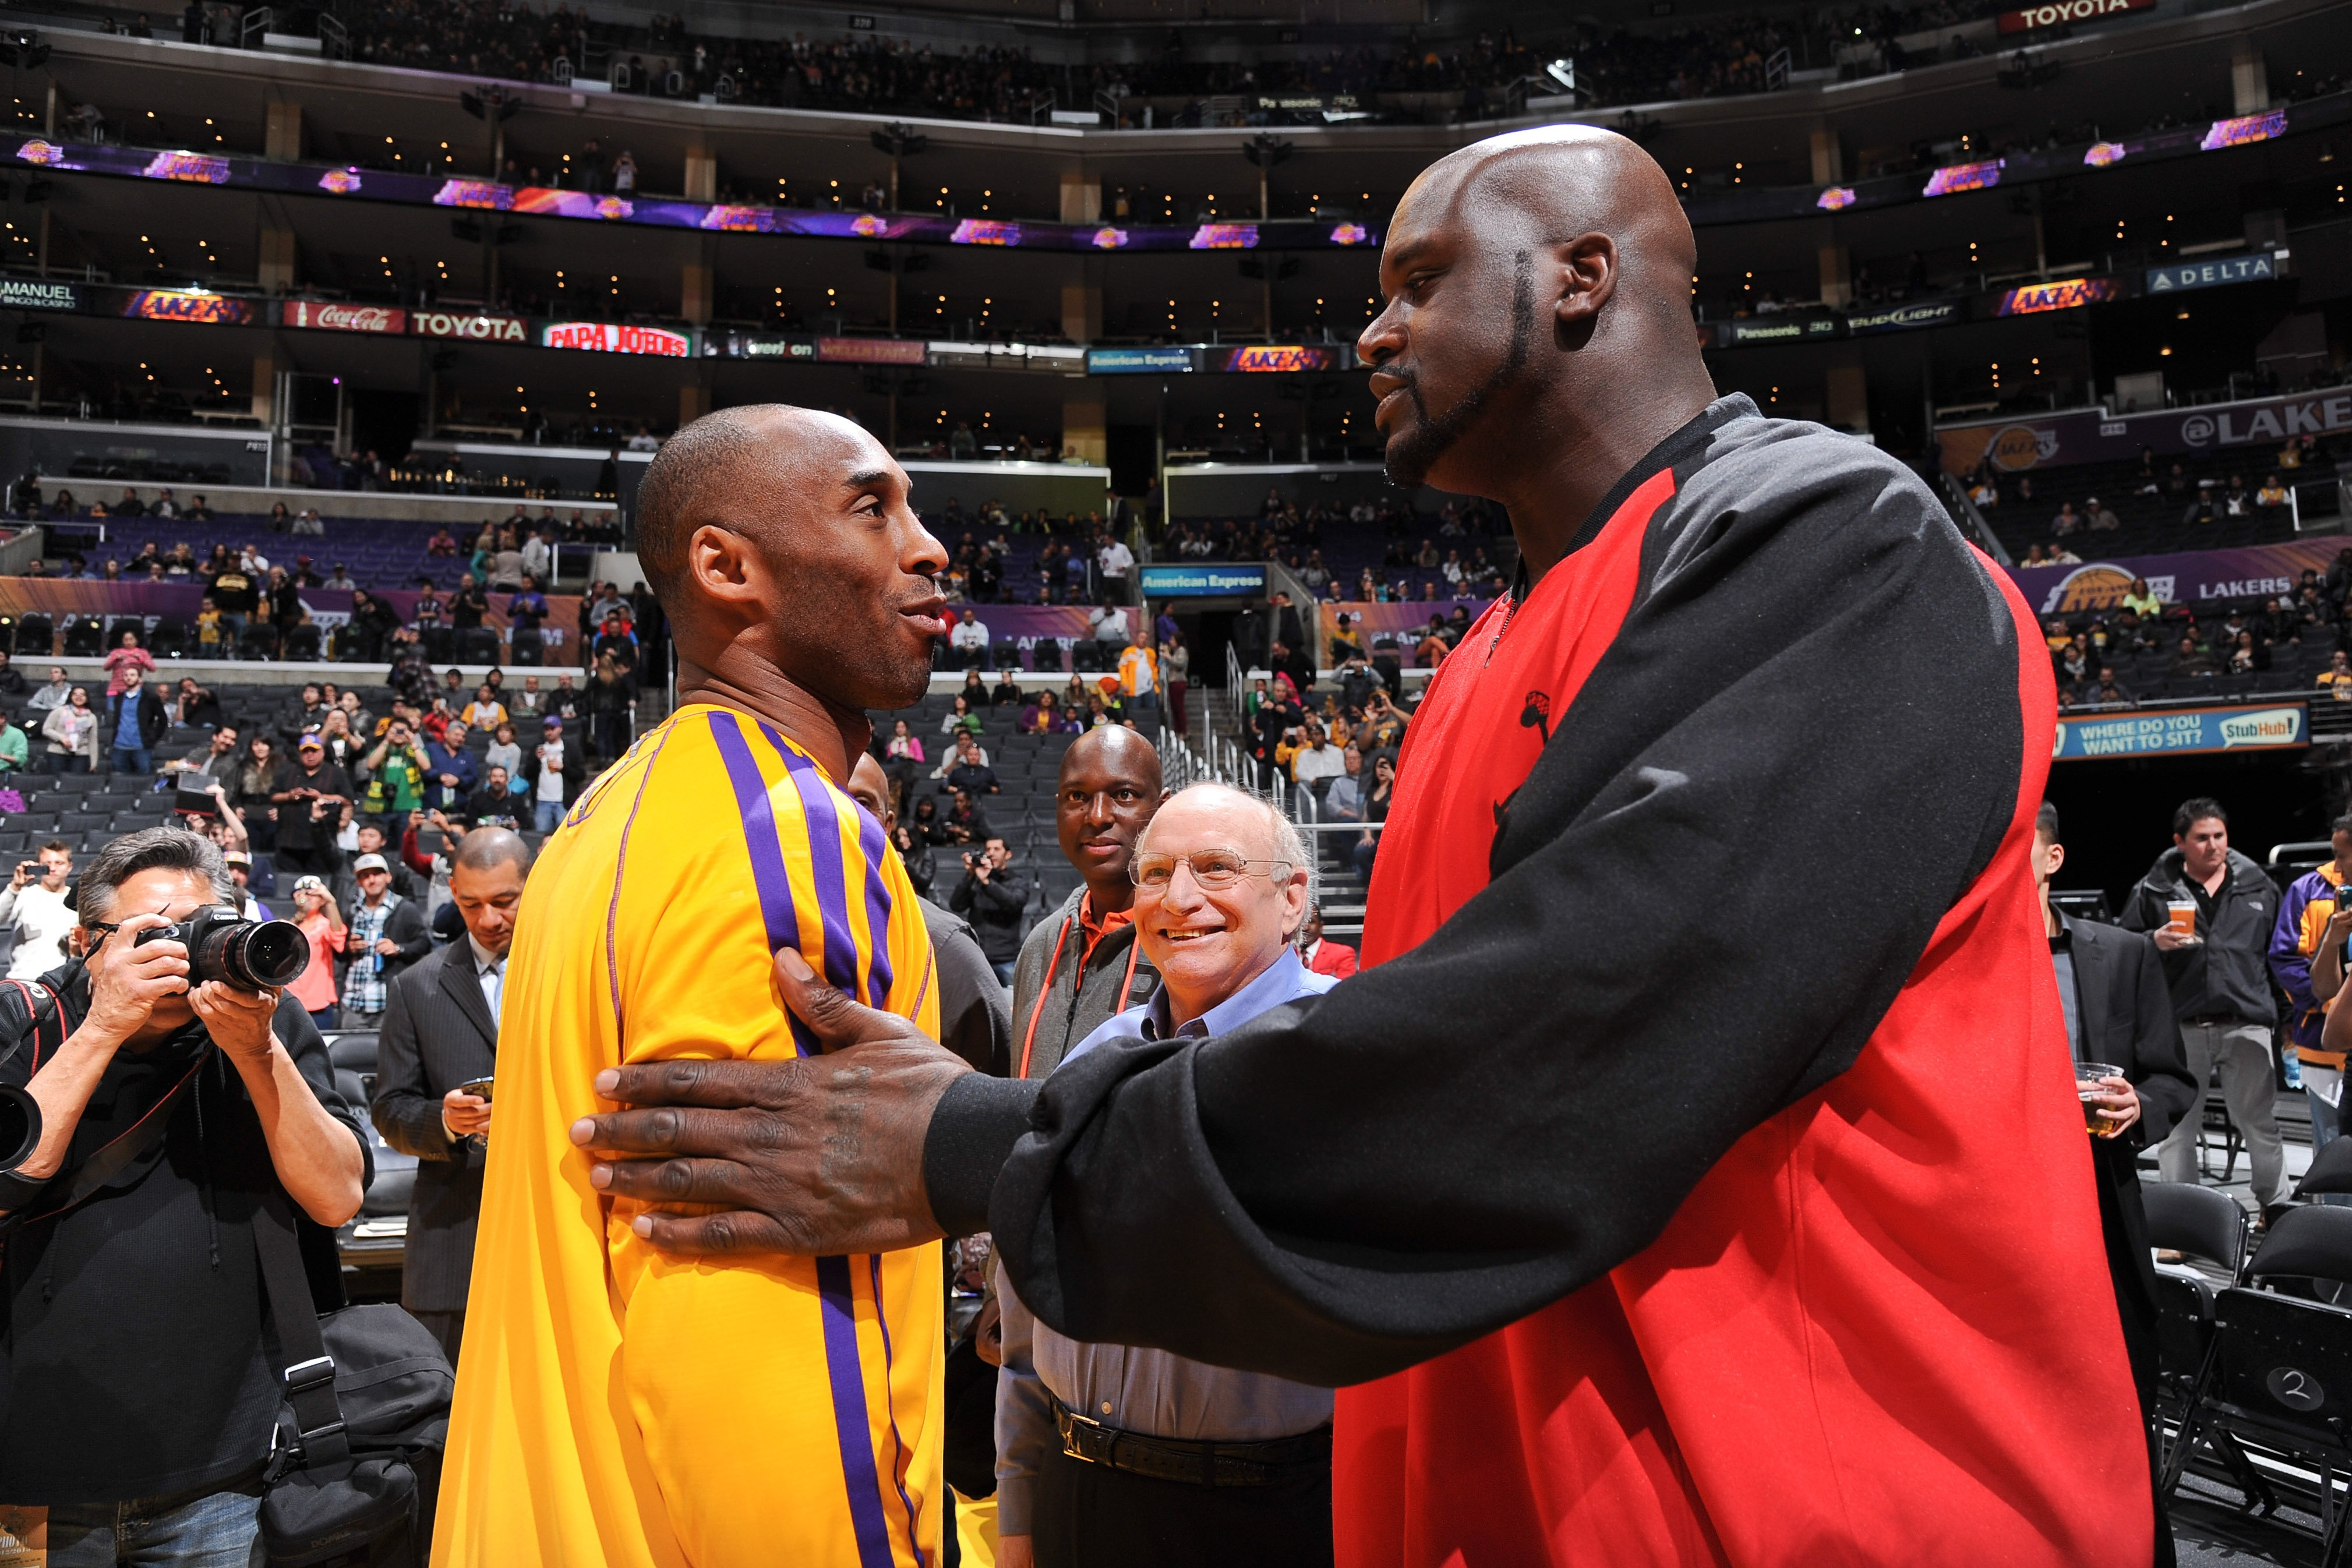 Shaquille O'Neal greets former teammate Kobe Bryant #24 of the Los Angeles Lakers before a game between the Lakers and the Phoenix Suns at Staples Center on February 12, 2013 | Photo: GettyImages